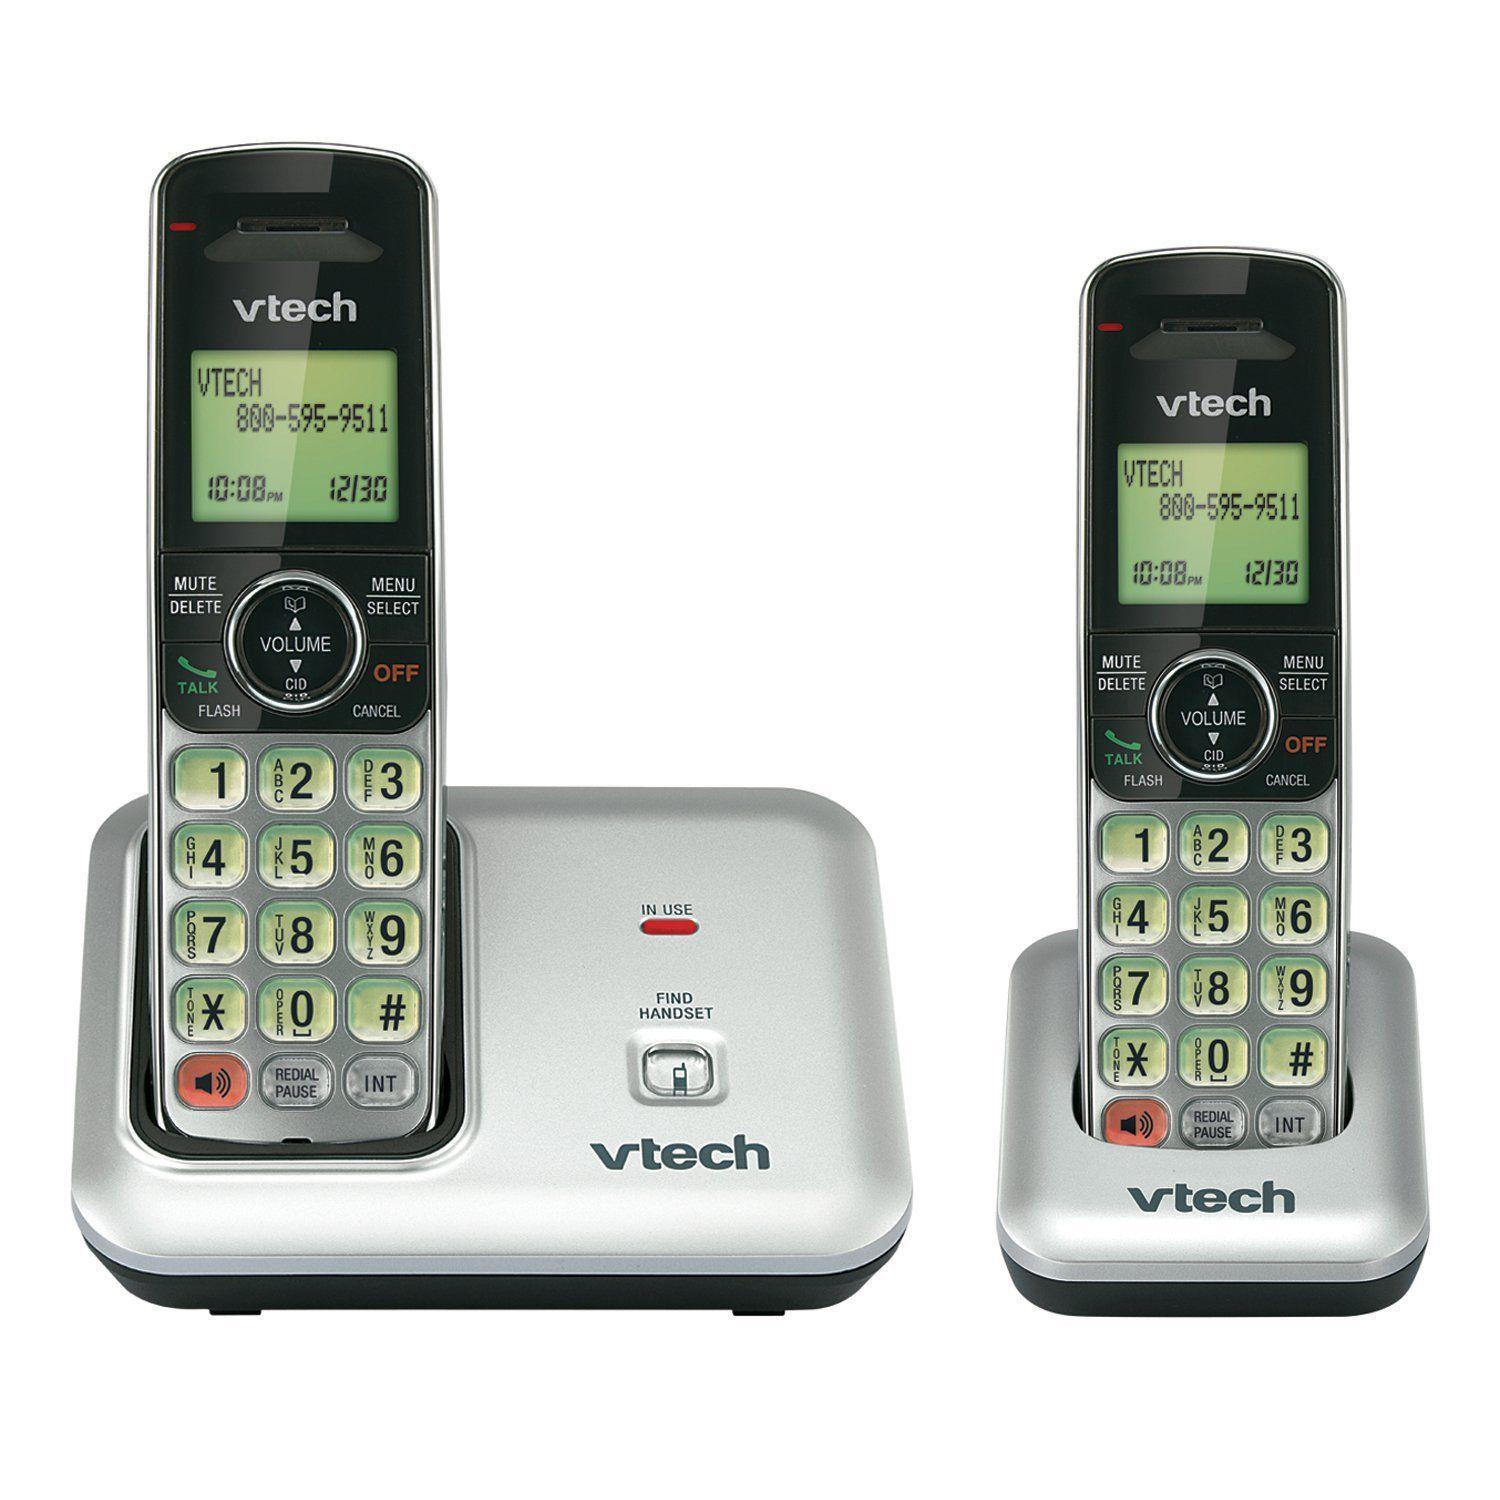 VTech CSR6919-2 DECT 6.0 Cordless Phone with Caller ID 2 Handsets Silver//Black